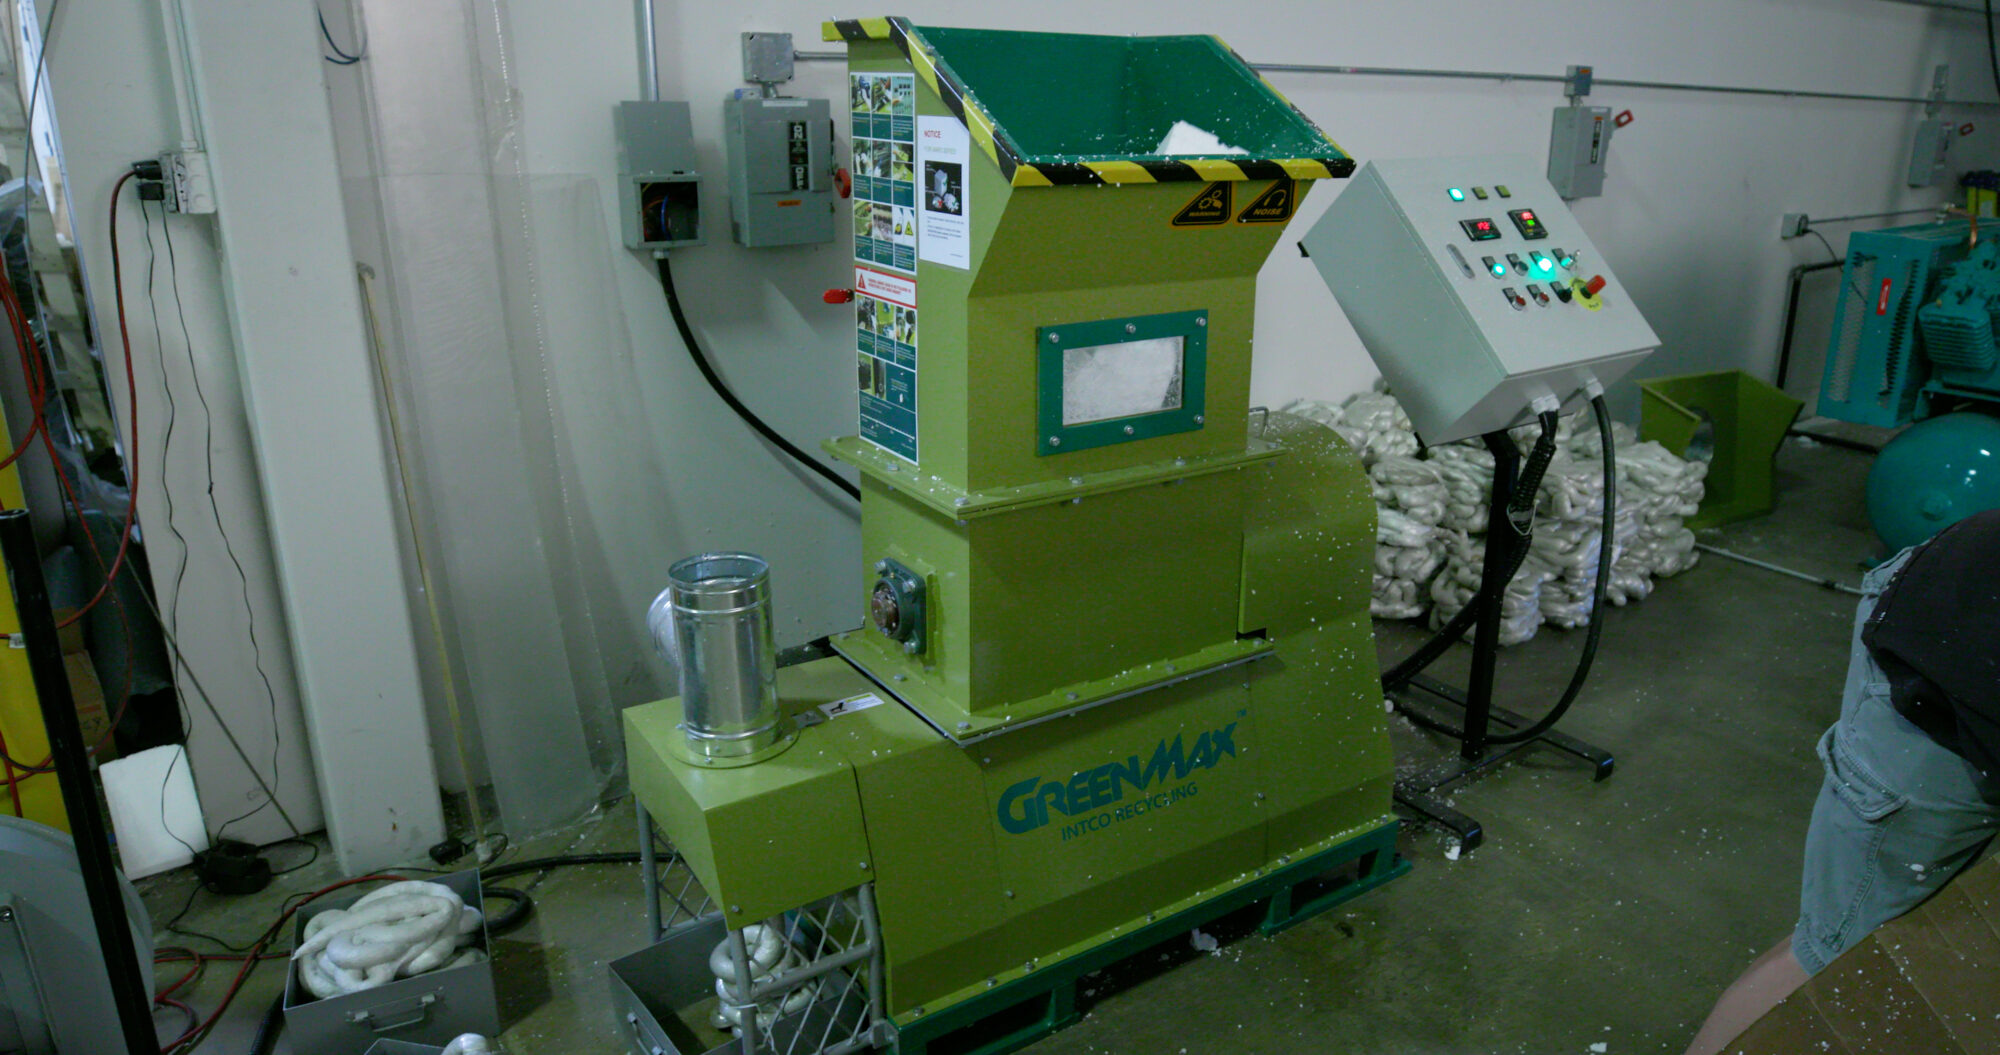 This is an image of the GREENMAX Melter Mars C50. It is a big green machine, over 5 feet tall and over 4 feet wide. There is a wide opening in the top for the Styrofoam to go through. This machine will help us reduce, reuse, and recycle our packaging waste.